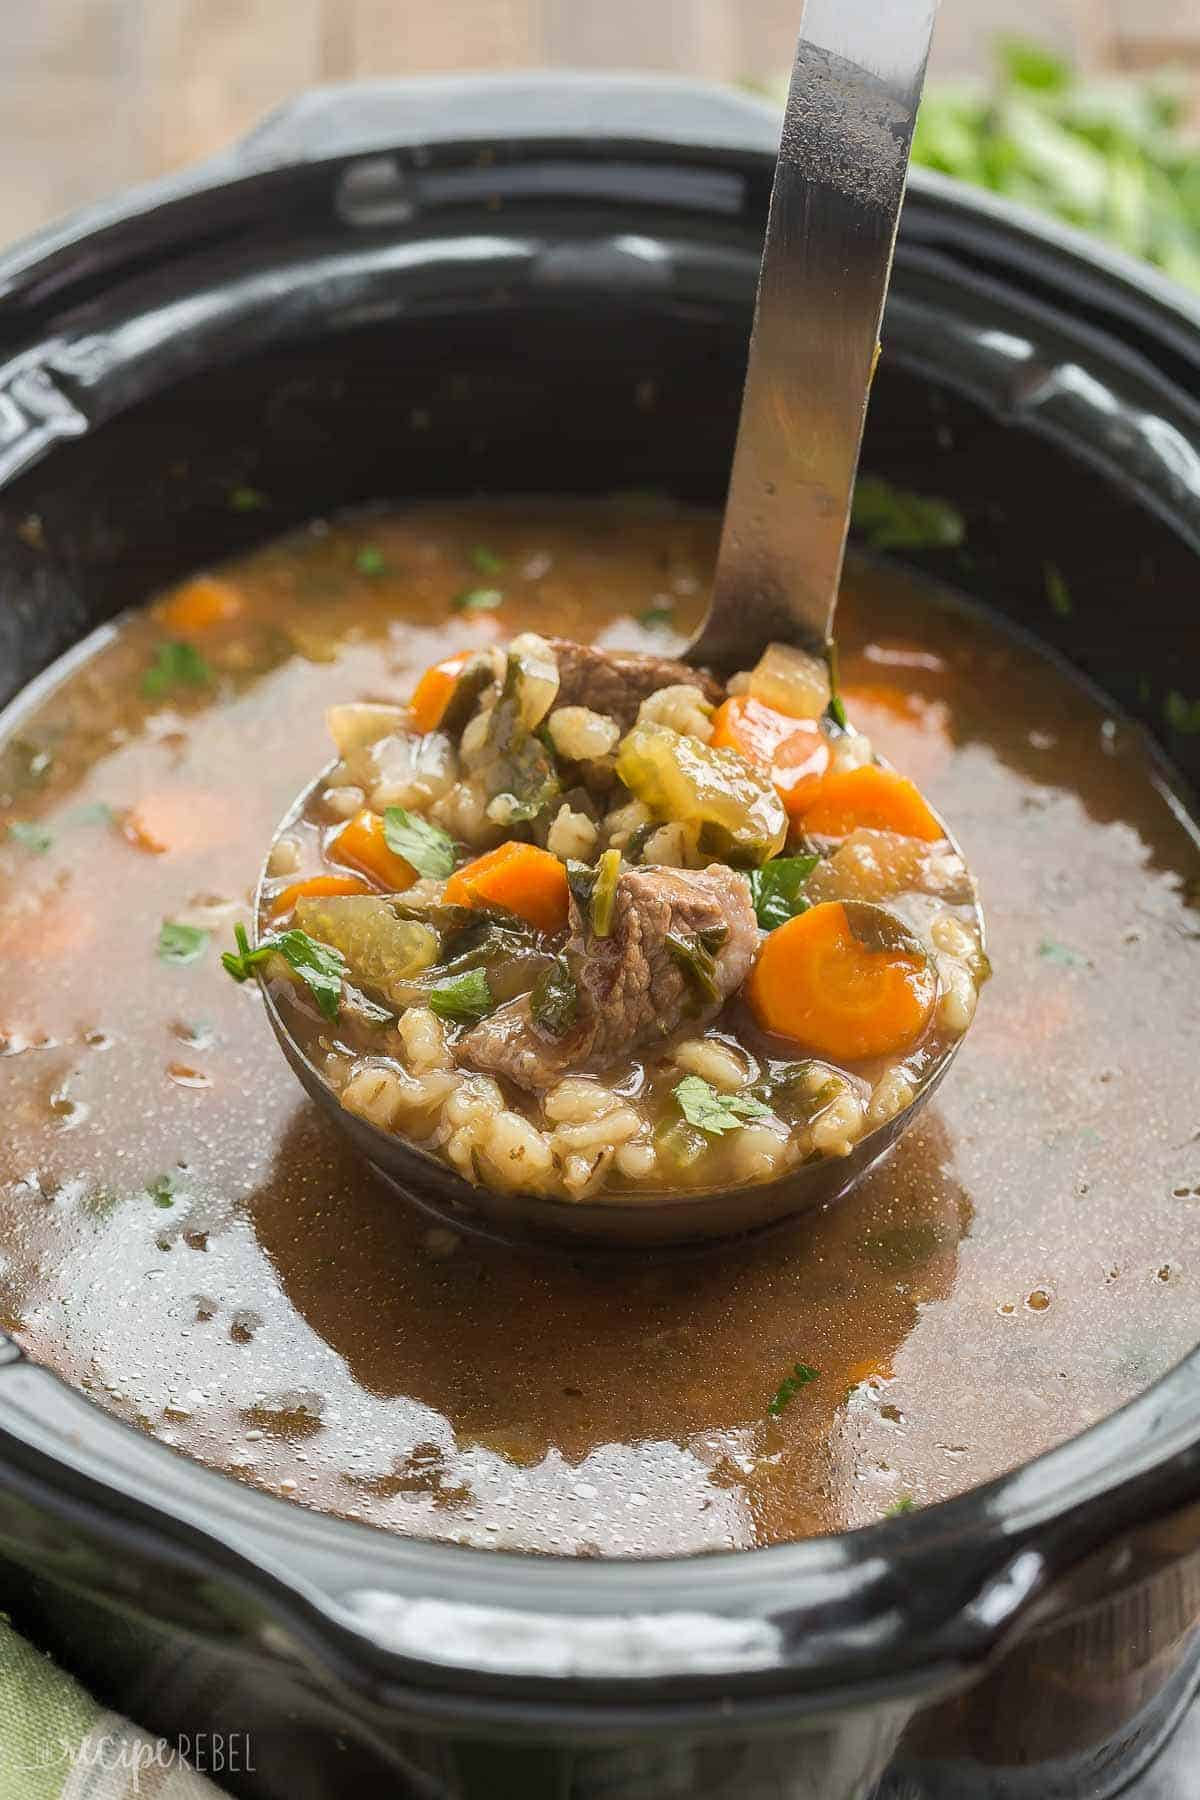 This Slow Cooker Beef Barley Soup is an easy crockpot meal perfect for fall or winter! Loaded with vegetables and tender chunks of beef. Includes step by step recipe video. | slow cooker recipe | crockpot recipe | beef stew | healthy dinner recipe | low calorie | high protein | #slowcooker #crockpot #slowcookerrecipe